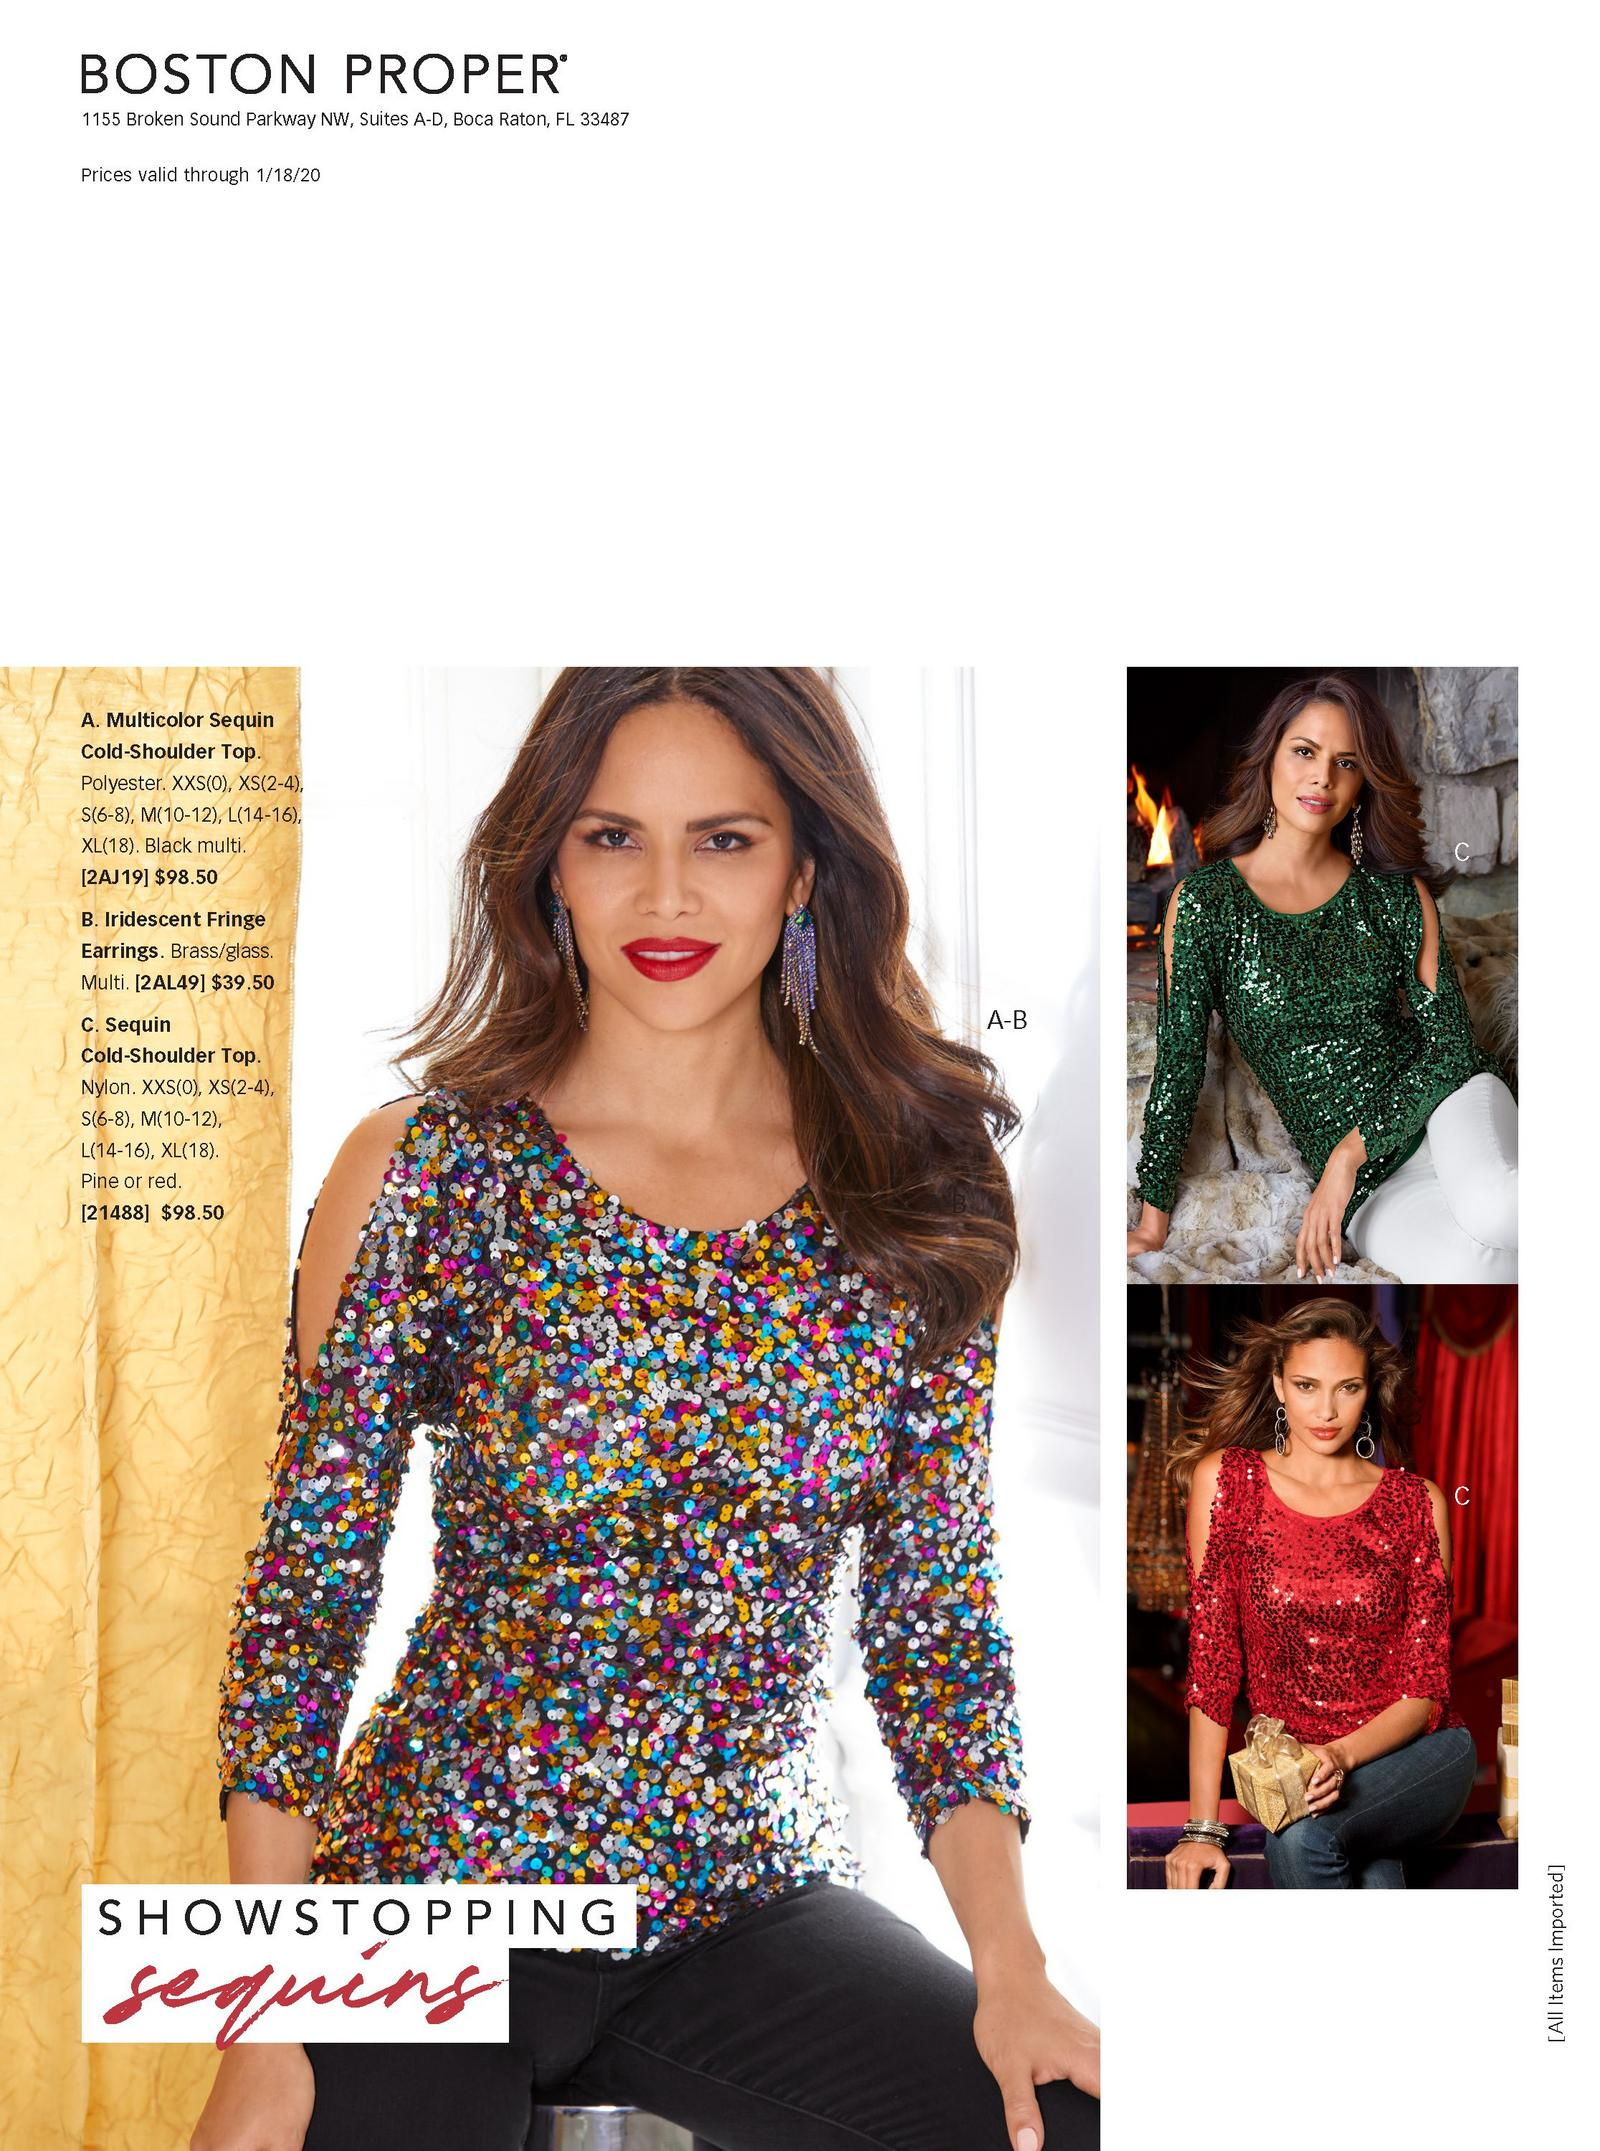 models wearing sparkly cold-shoulder tops in red, green, and multi